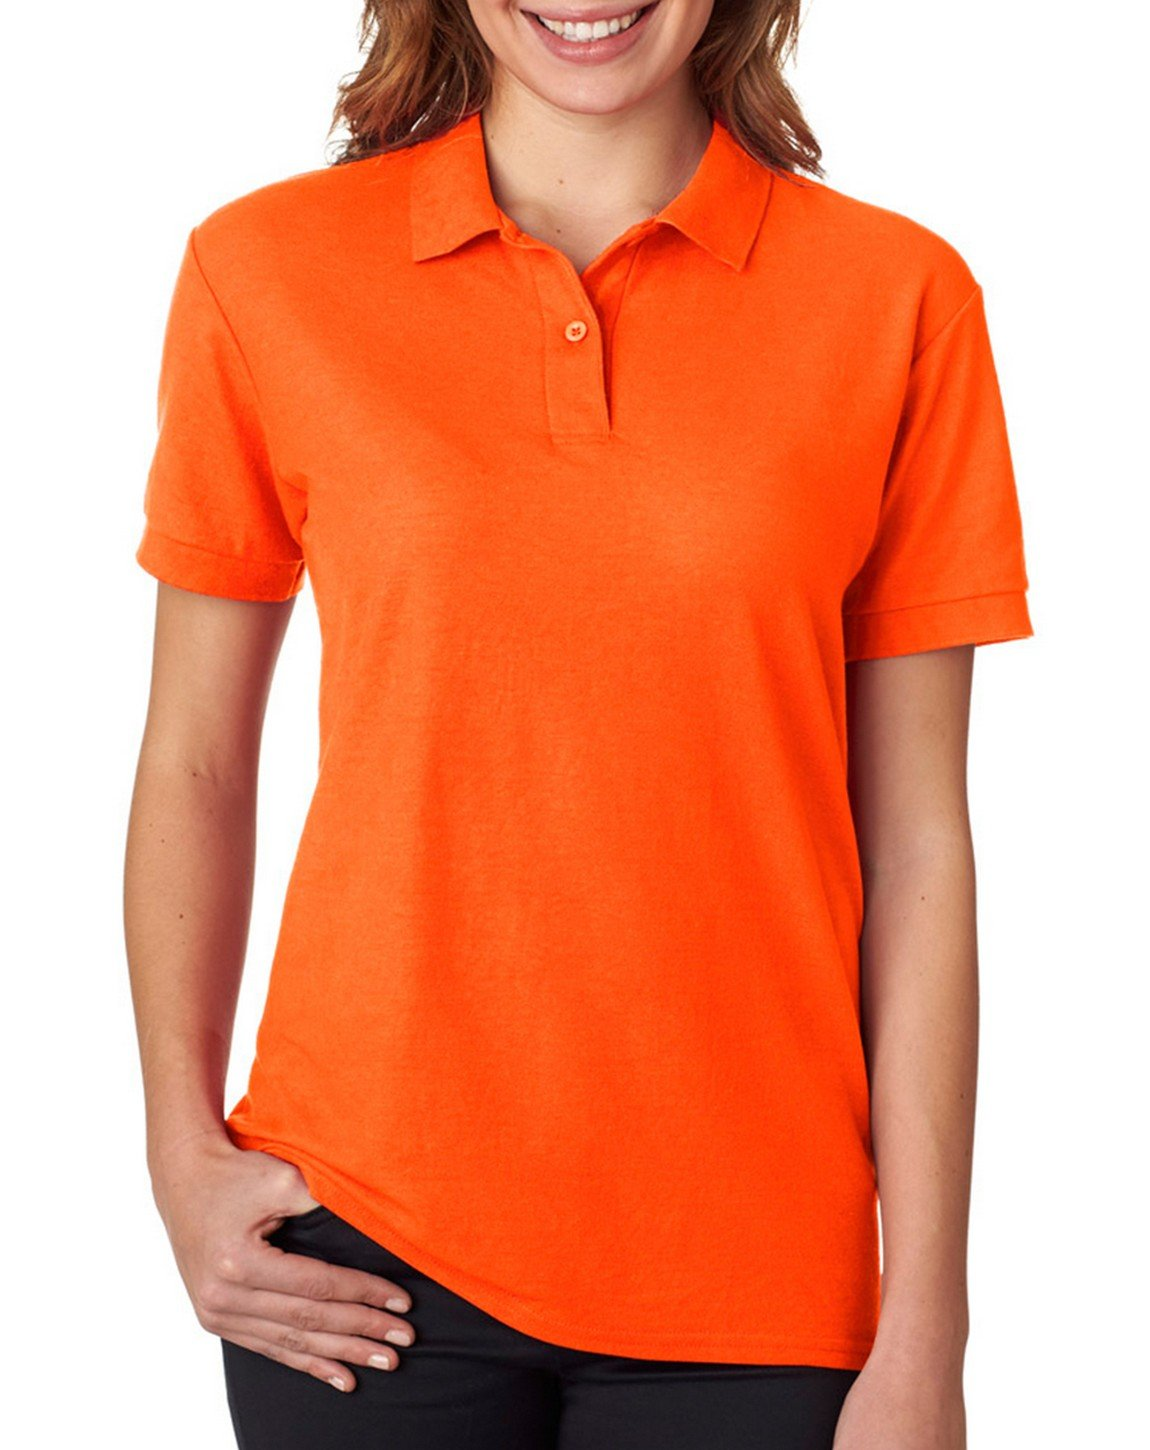 Gildan - Ladies DryBlend Double Pique Polo Shirt - 72800L-Safety Orange-M